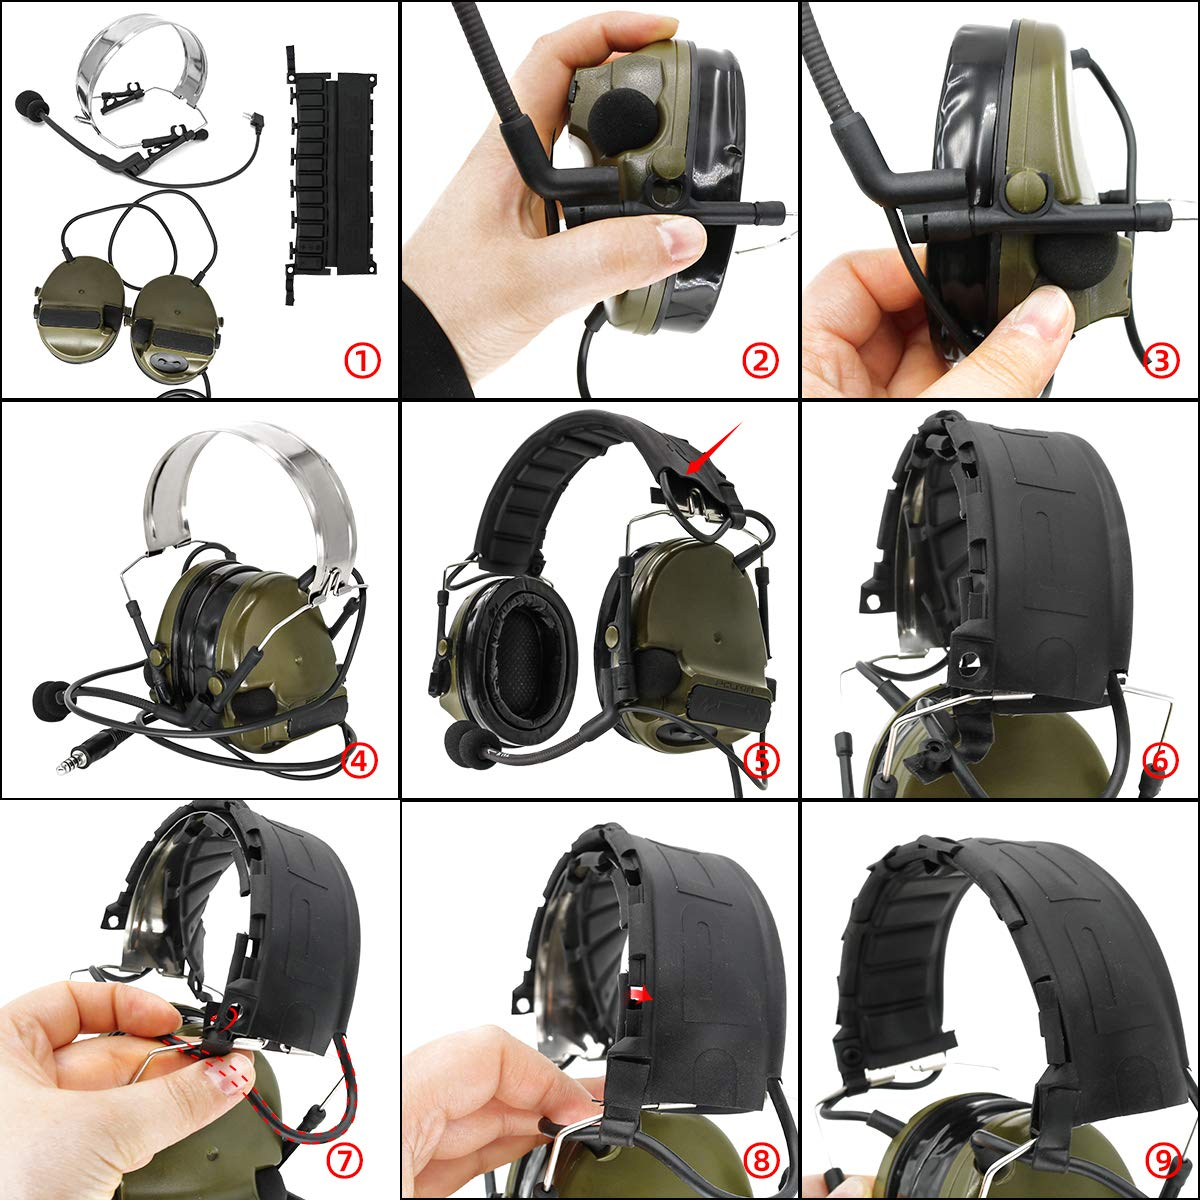 Black TAC-SKY Electronic Tactical Headset Hearing Defender Noise Reduction Sound Pickup Ear Protection